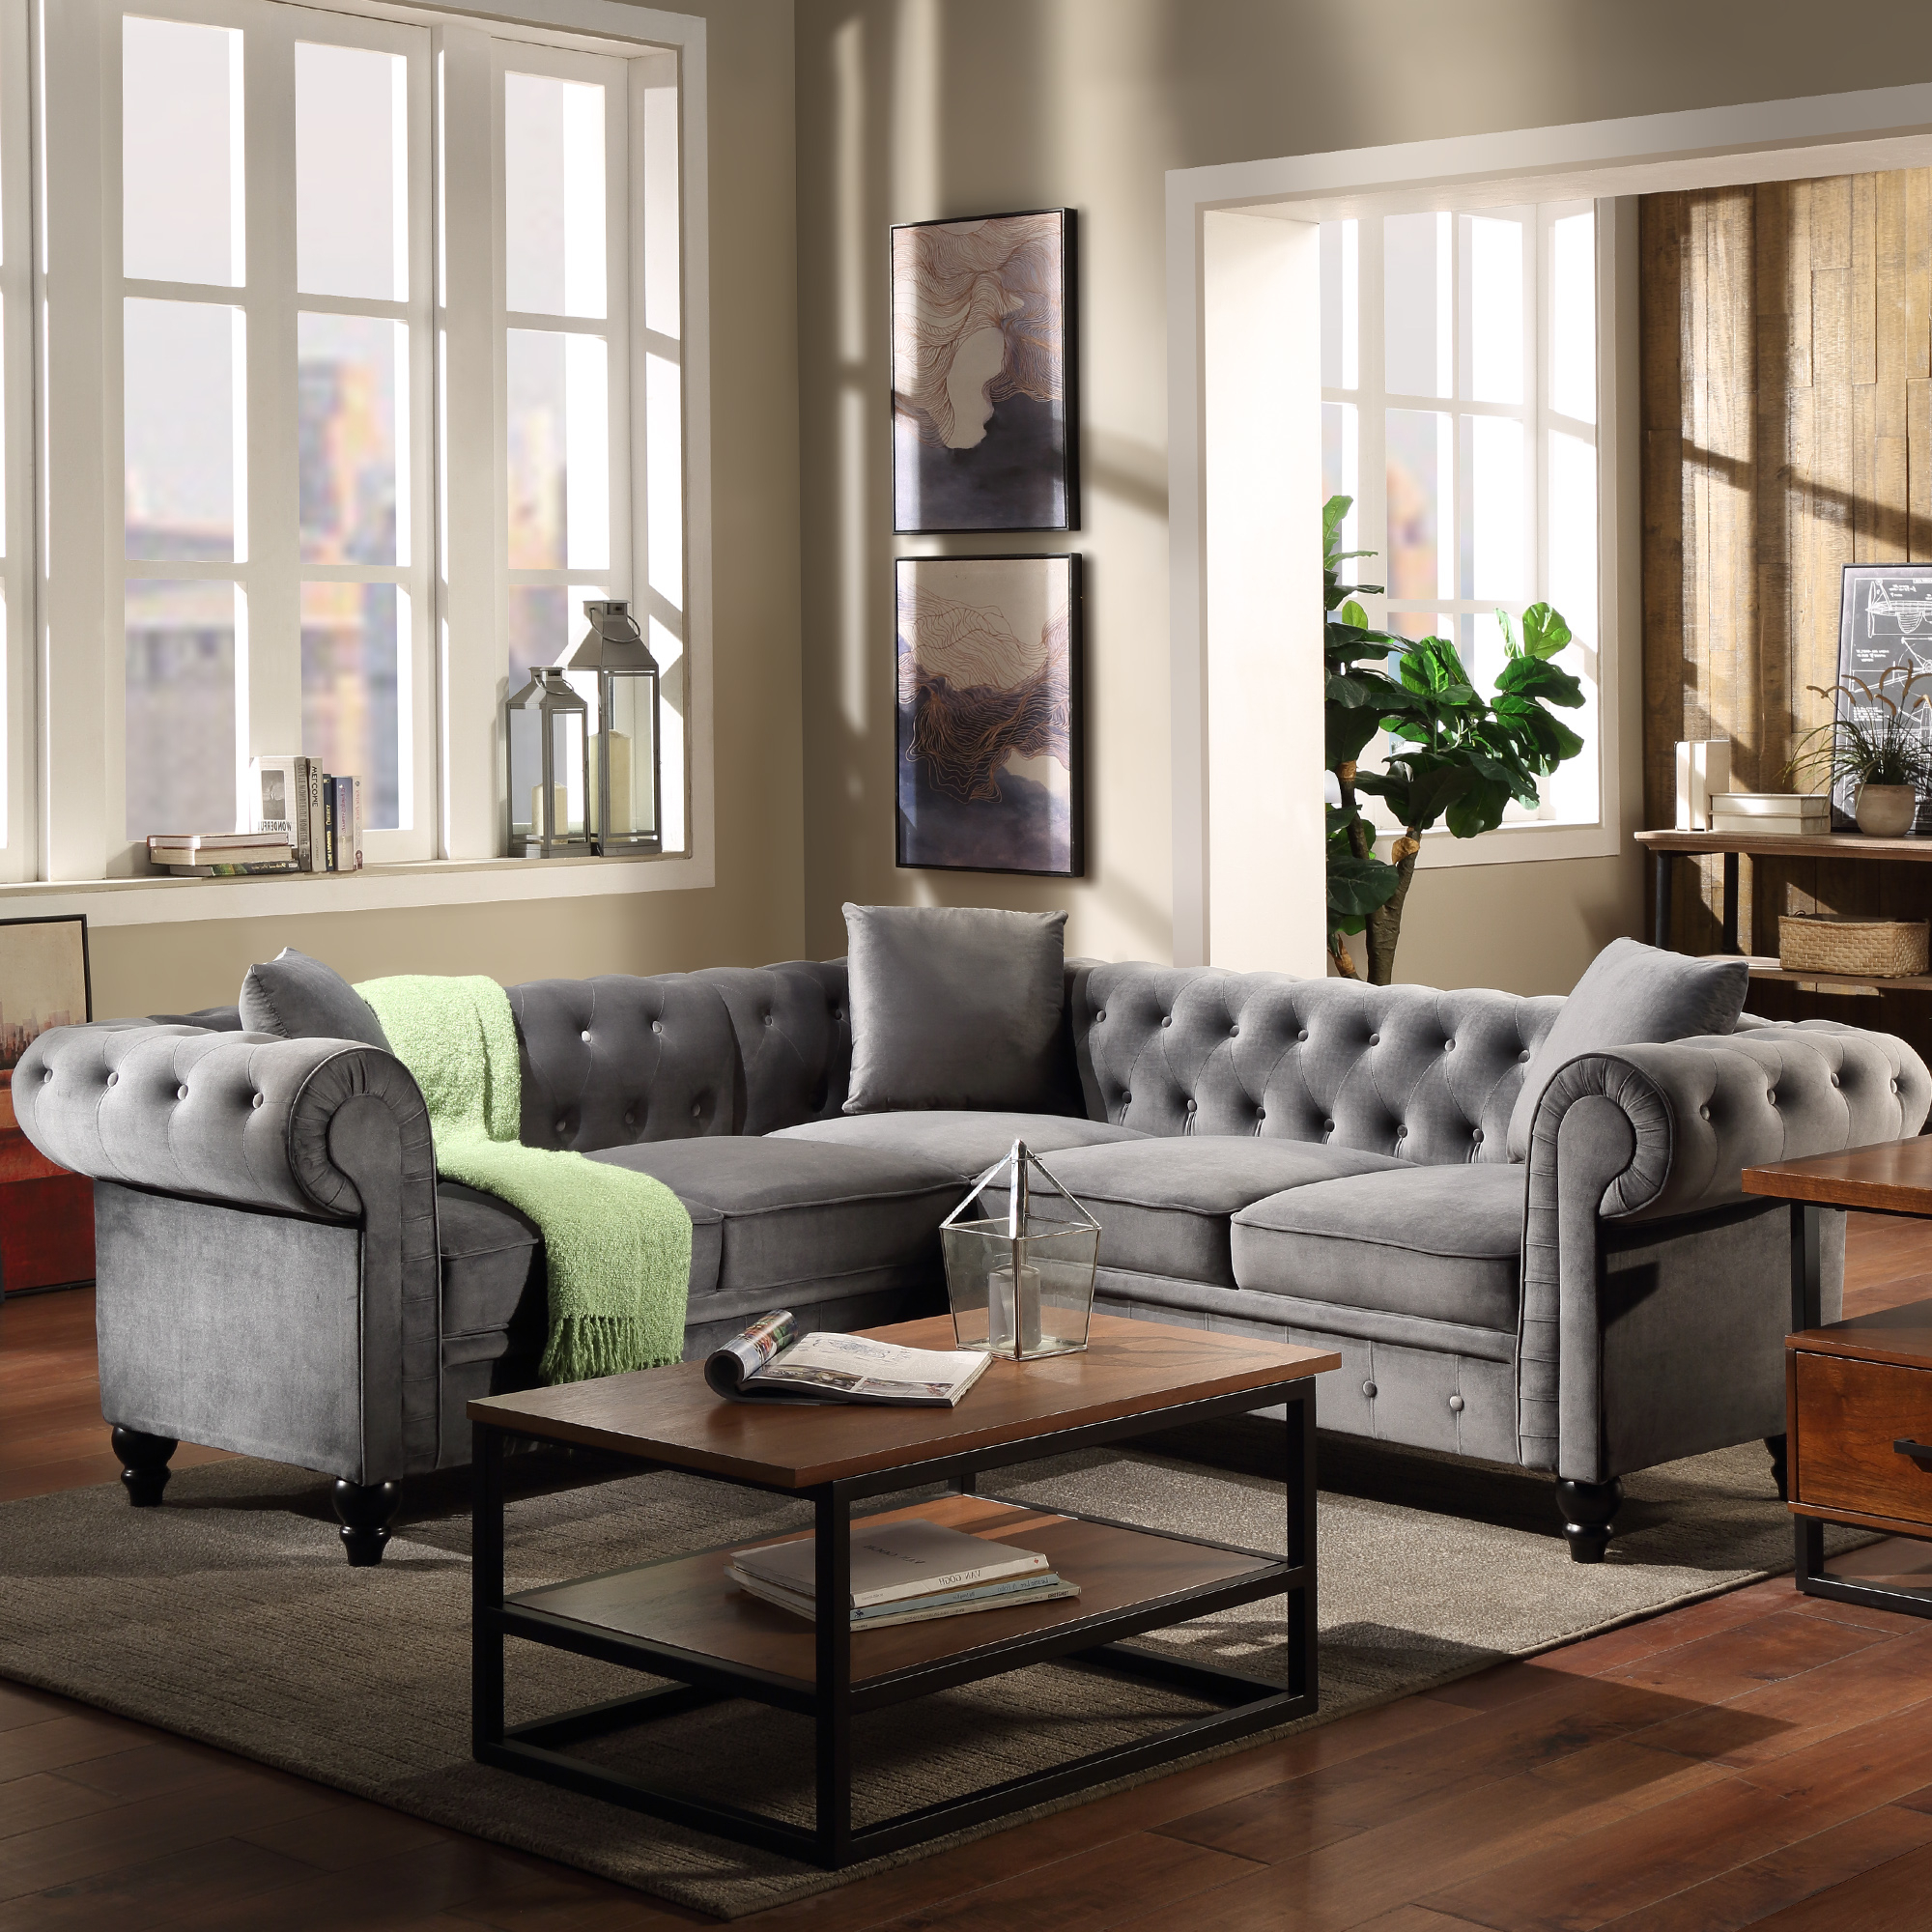 Chesterfield Sofa For Living Room, Mid Century L Shape In Noa Sectional Sofas With Ottoman Gray (View 5 of 15)